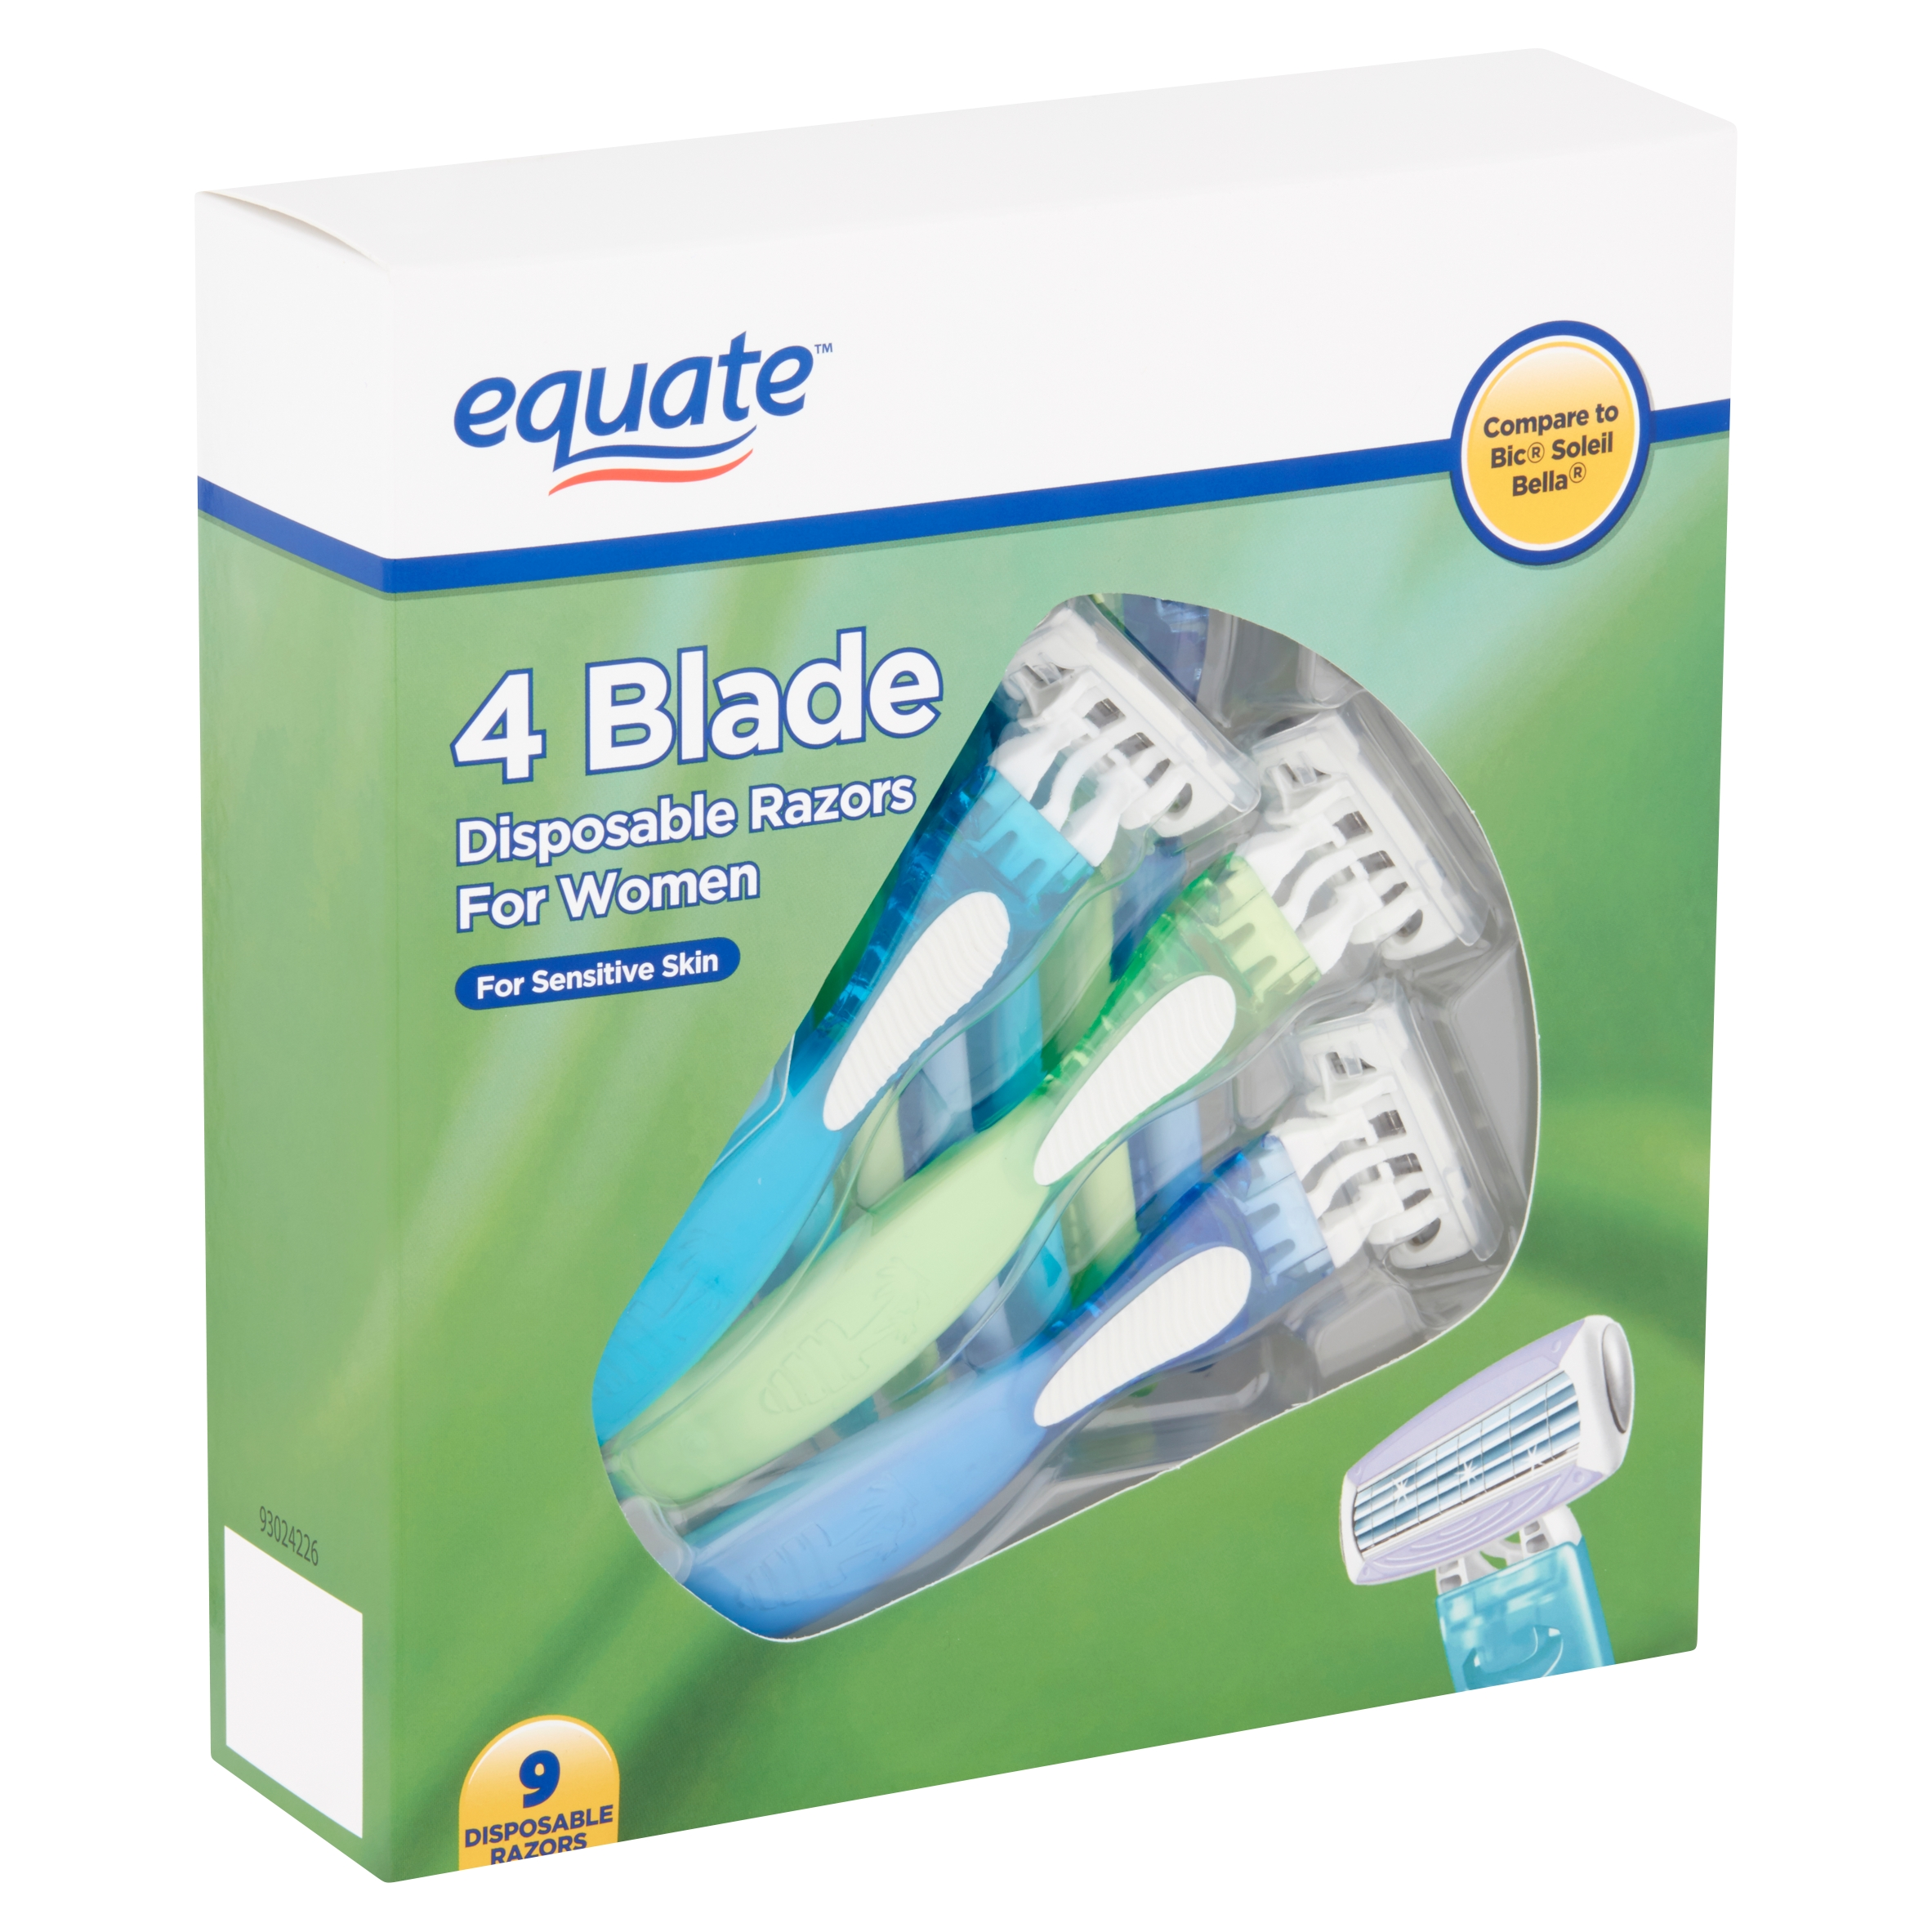 Equate 4 Blade Disposable Razors for Women, 9 count